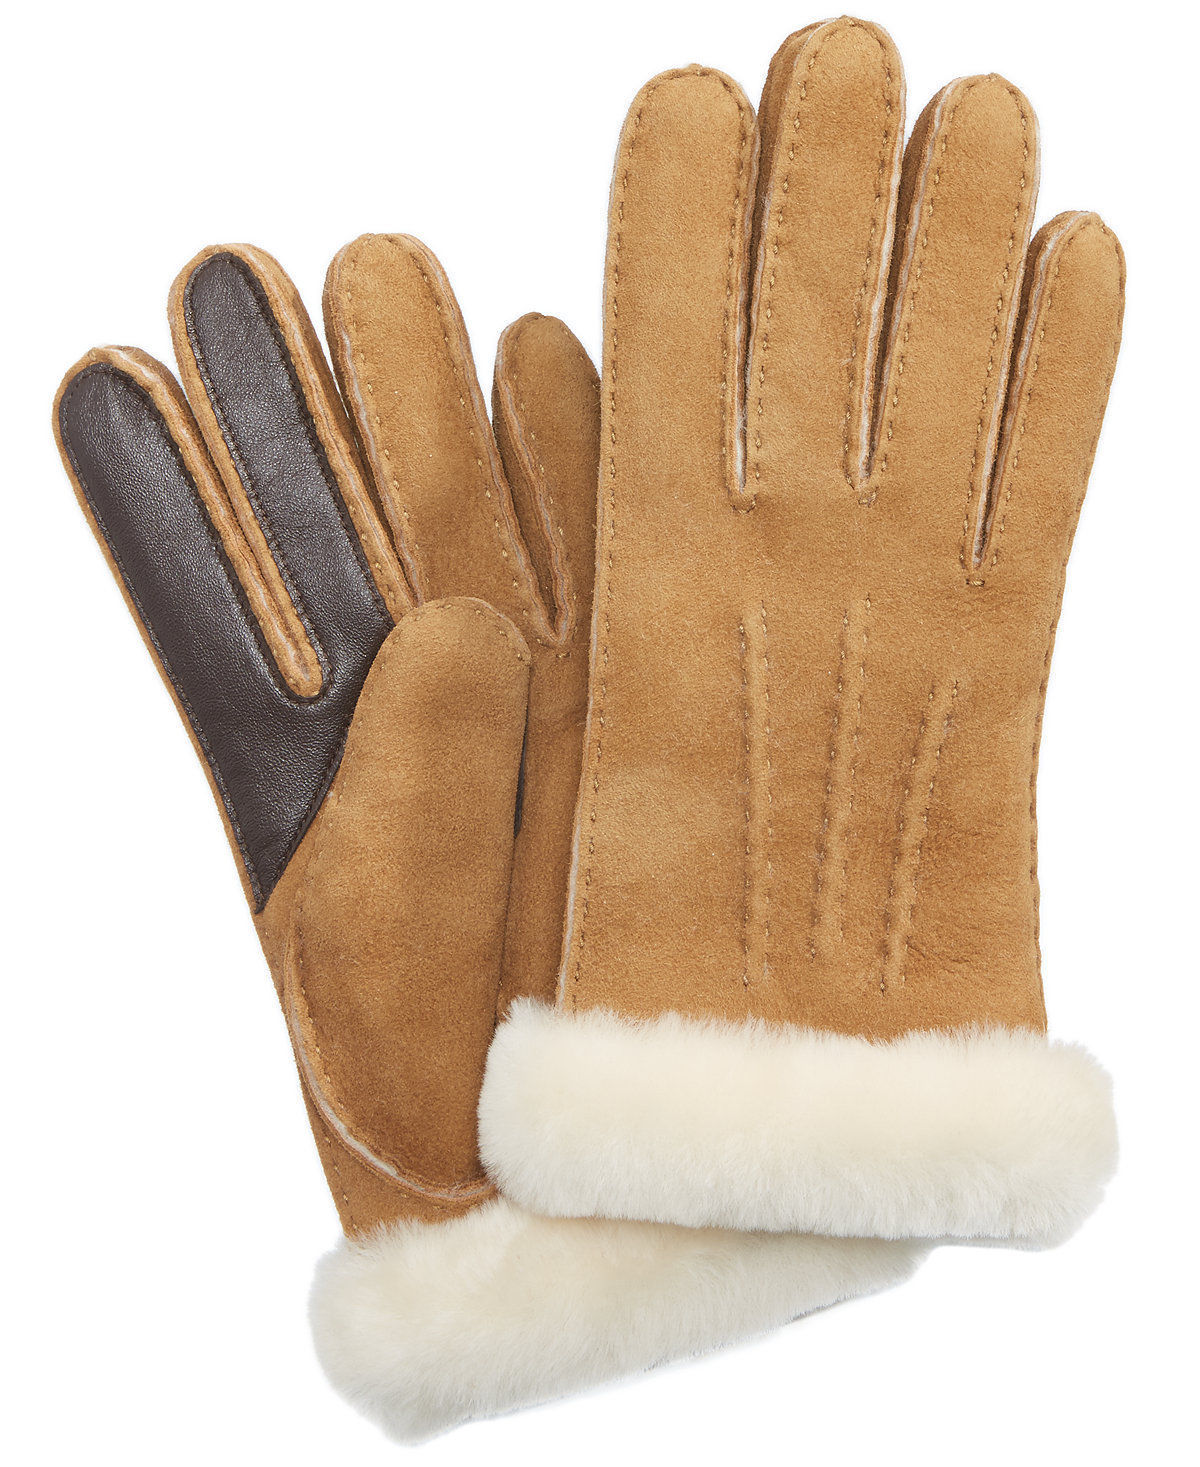 UGG Womens Sheepskin Carter Tech Glove in Chestnut [16132]